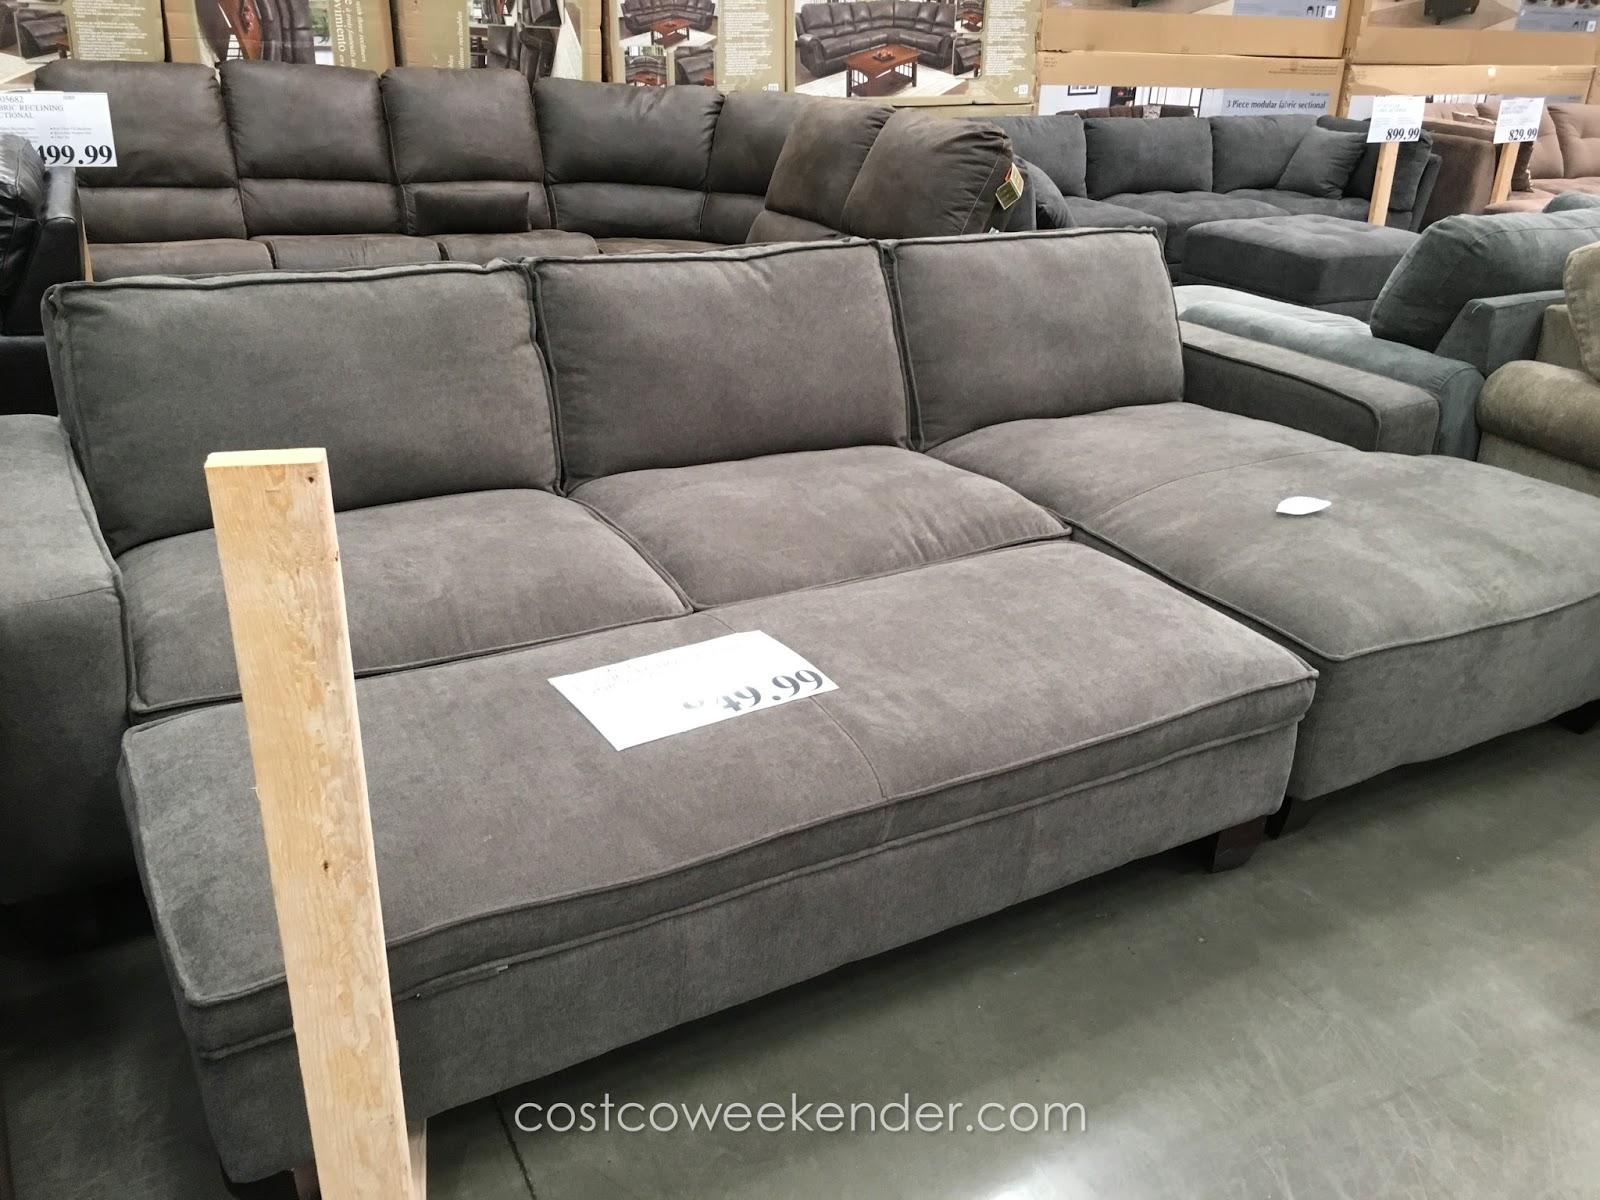 Sectional Sofa Bed With Storage Chaise Chaise Sectional Sofa With Storage Ottoman Costco Weekender